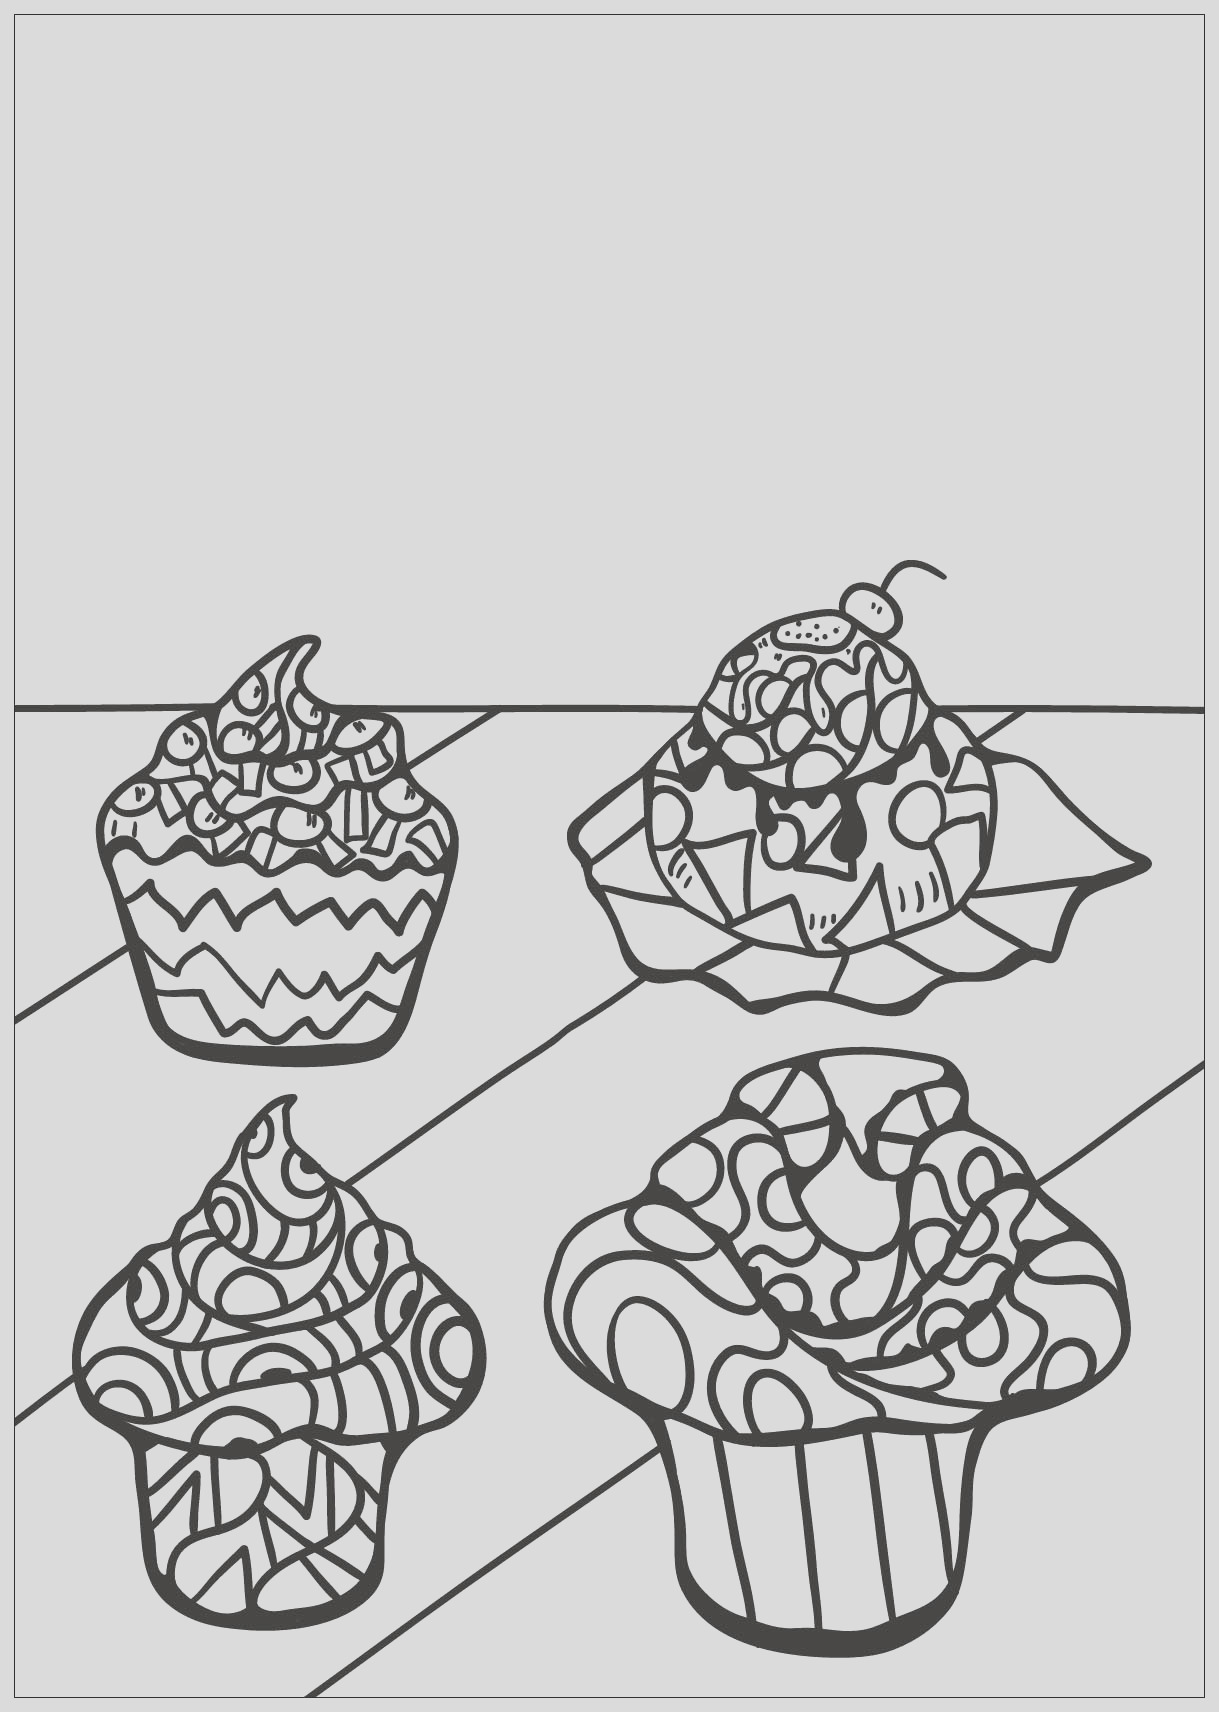 image=cup cakes coloring free book cupcake 8 1